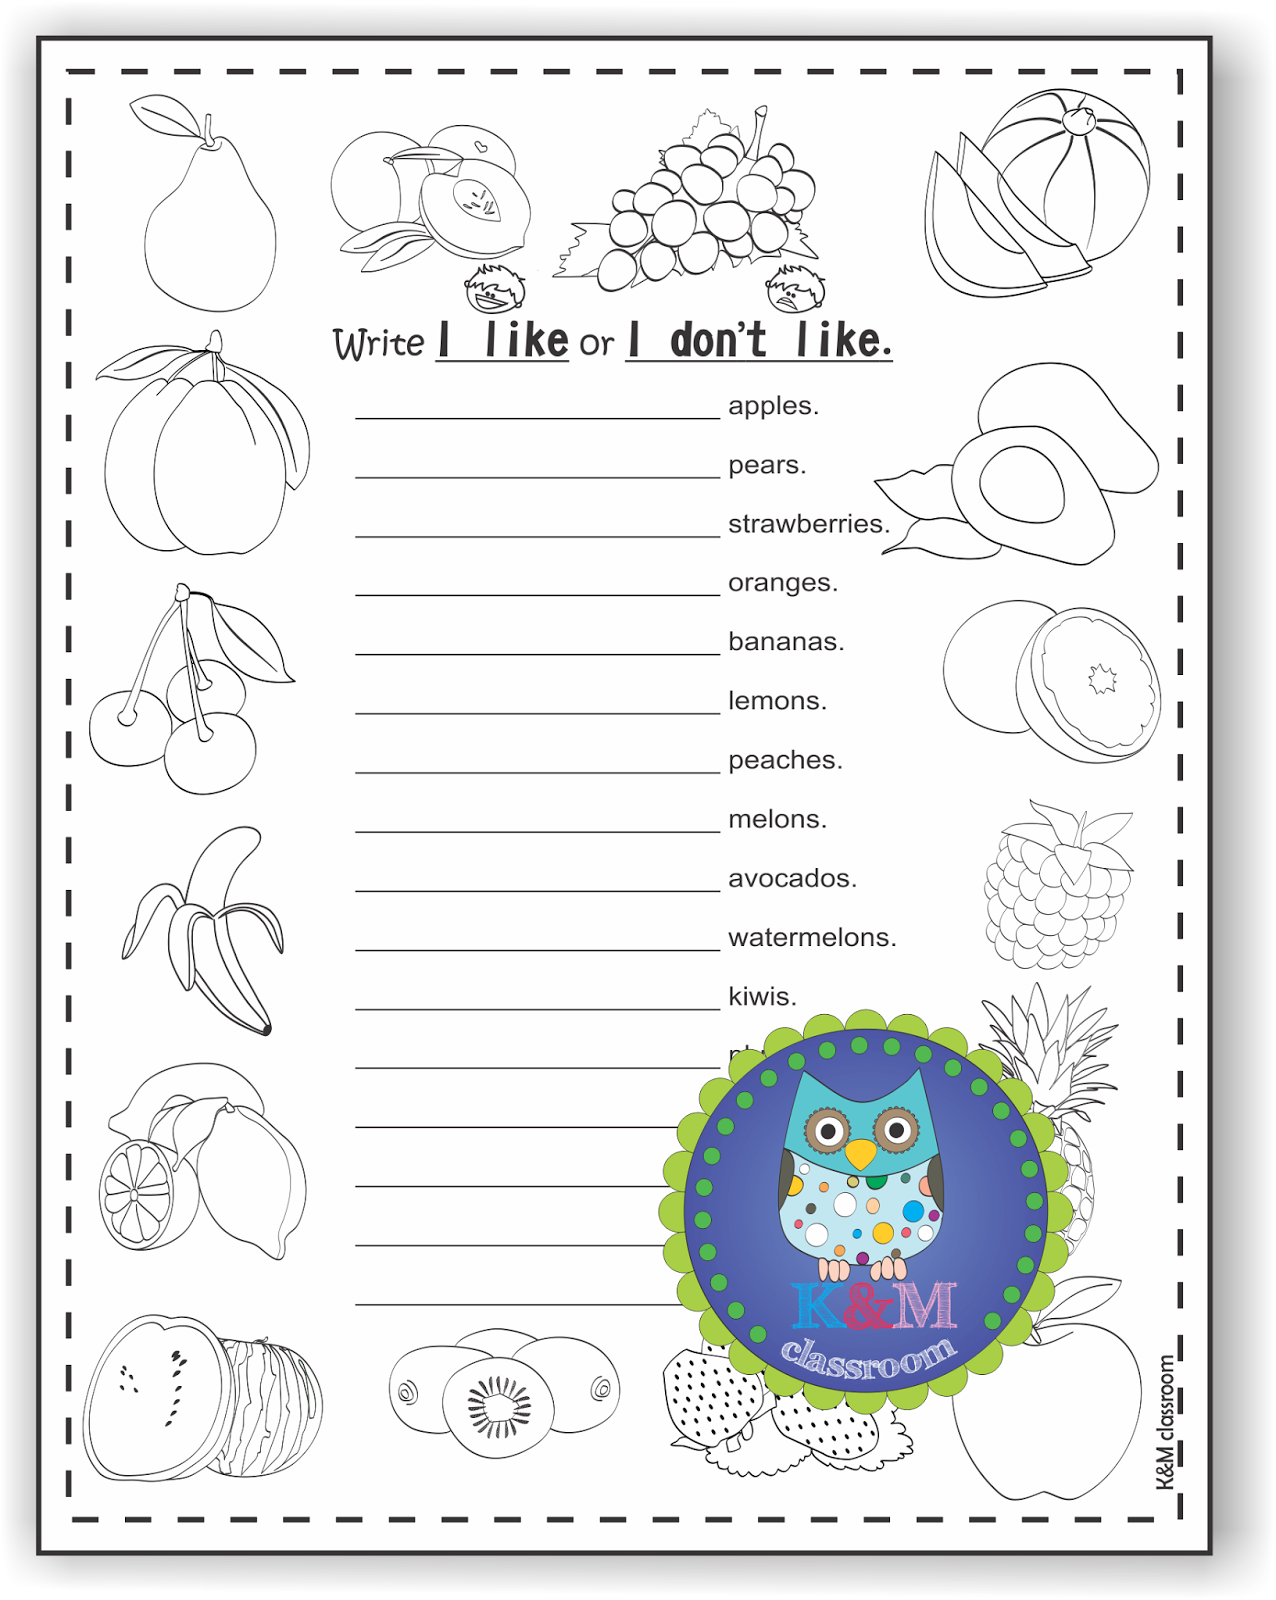 Worksheets Esl Grammar Worksheets km classroom esl grammar with fruits i like dont printable worksheets